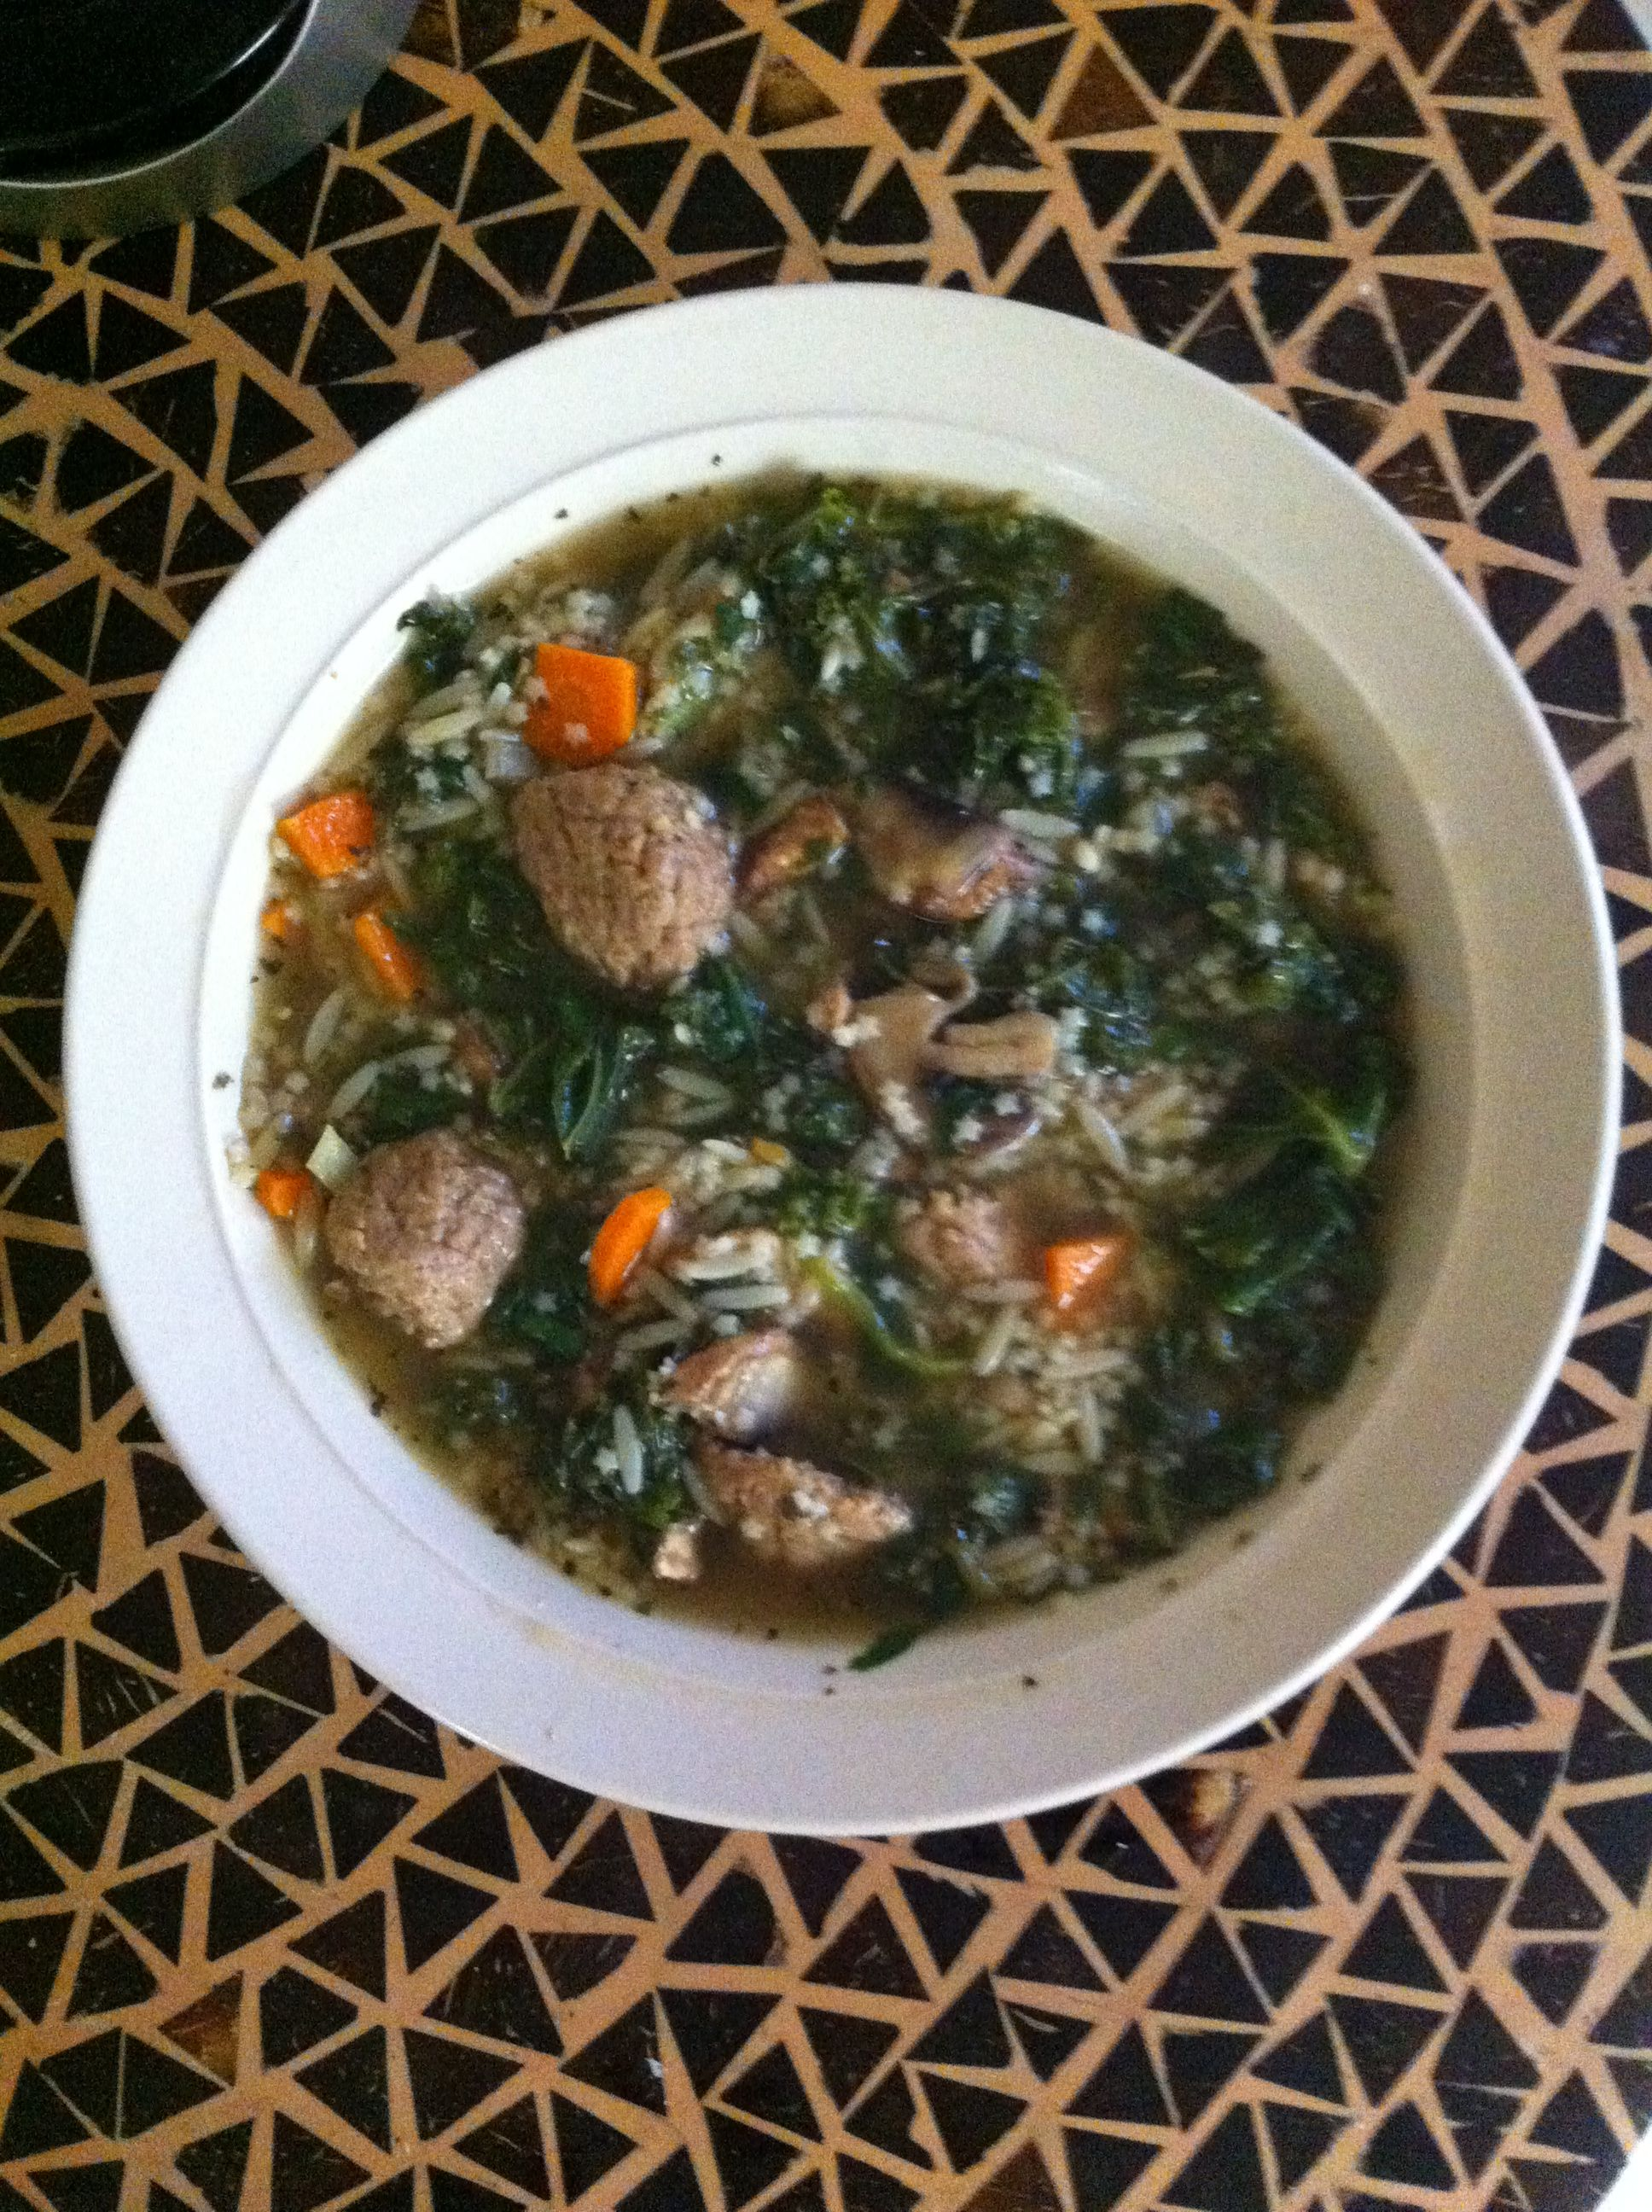 Vegetarian Italian wedding soup. 150 calories per serving